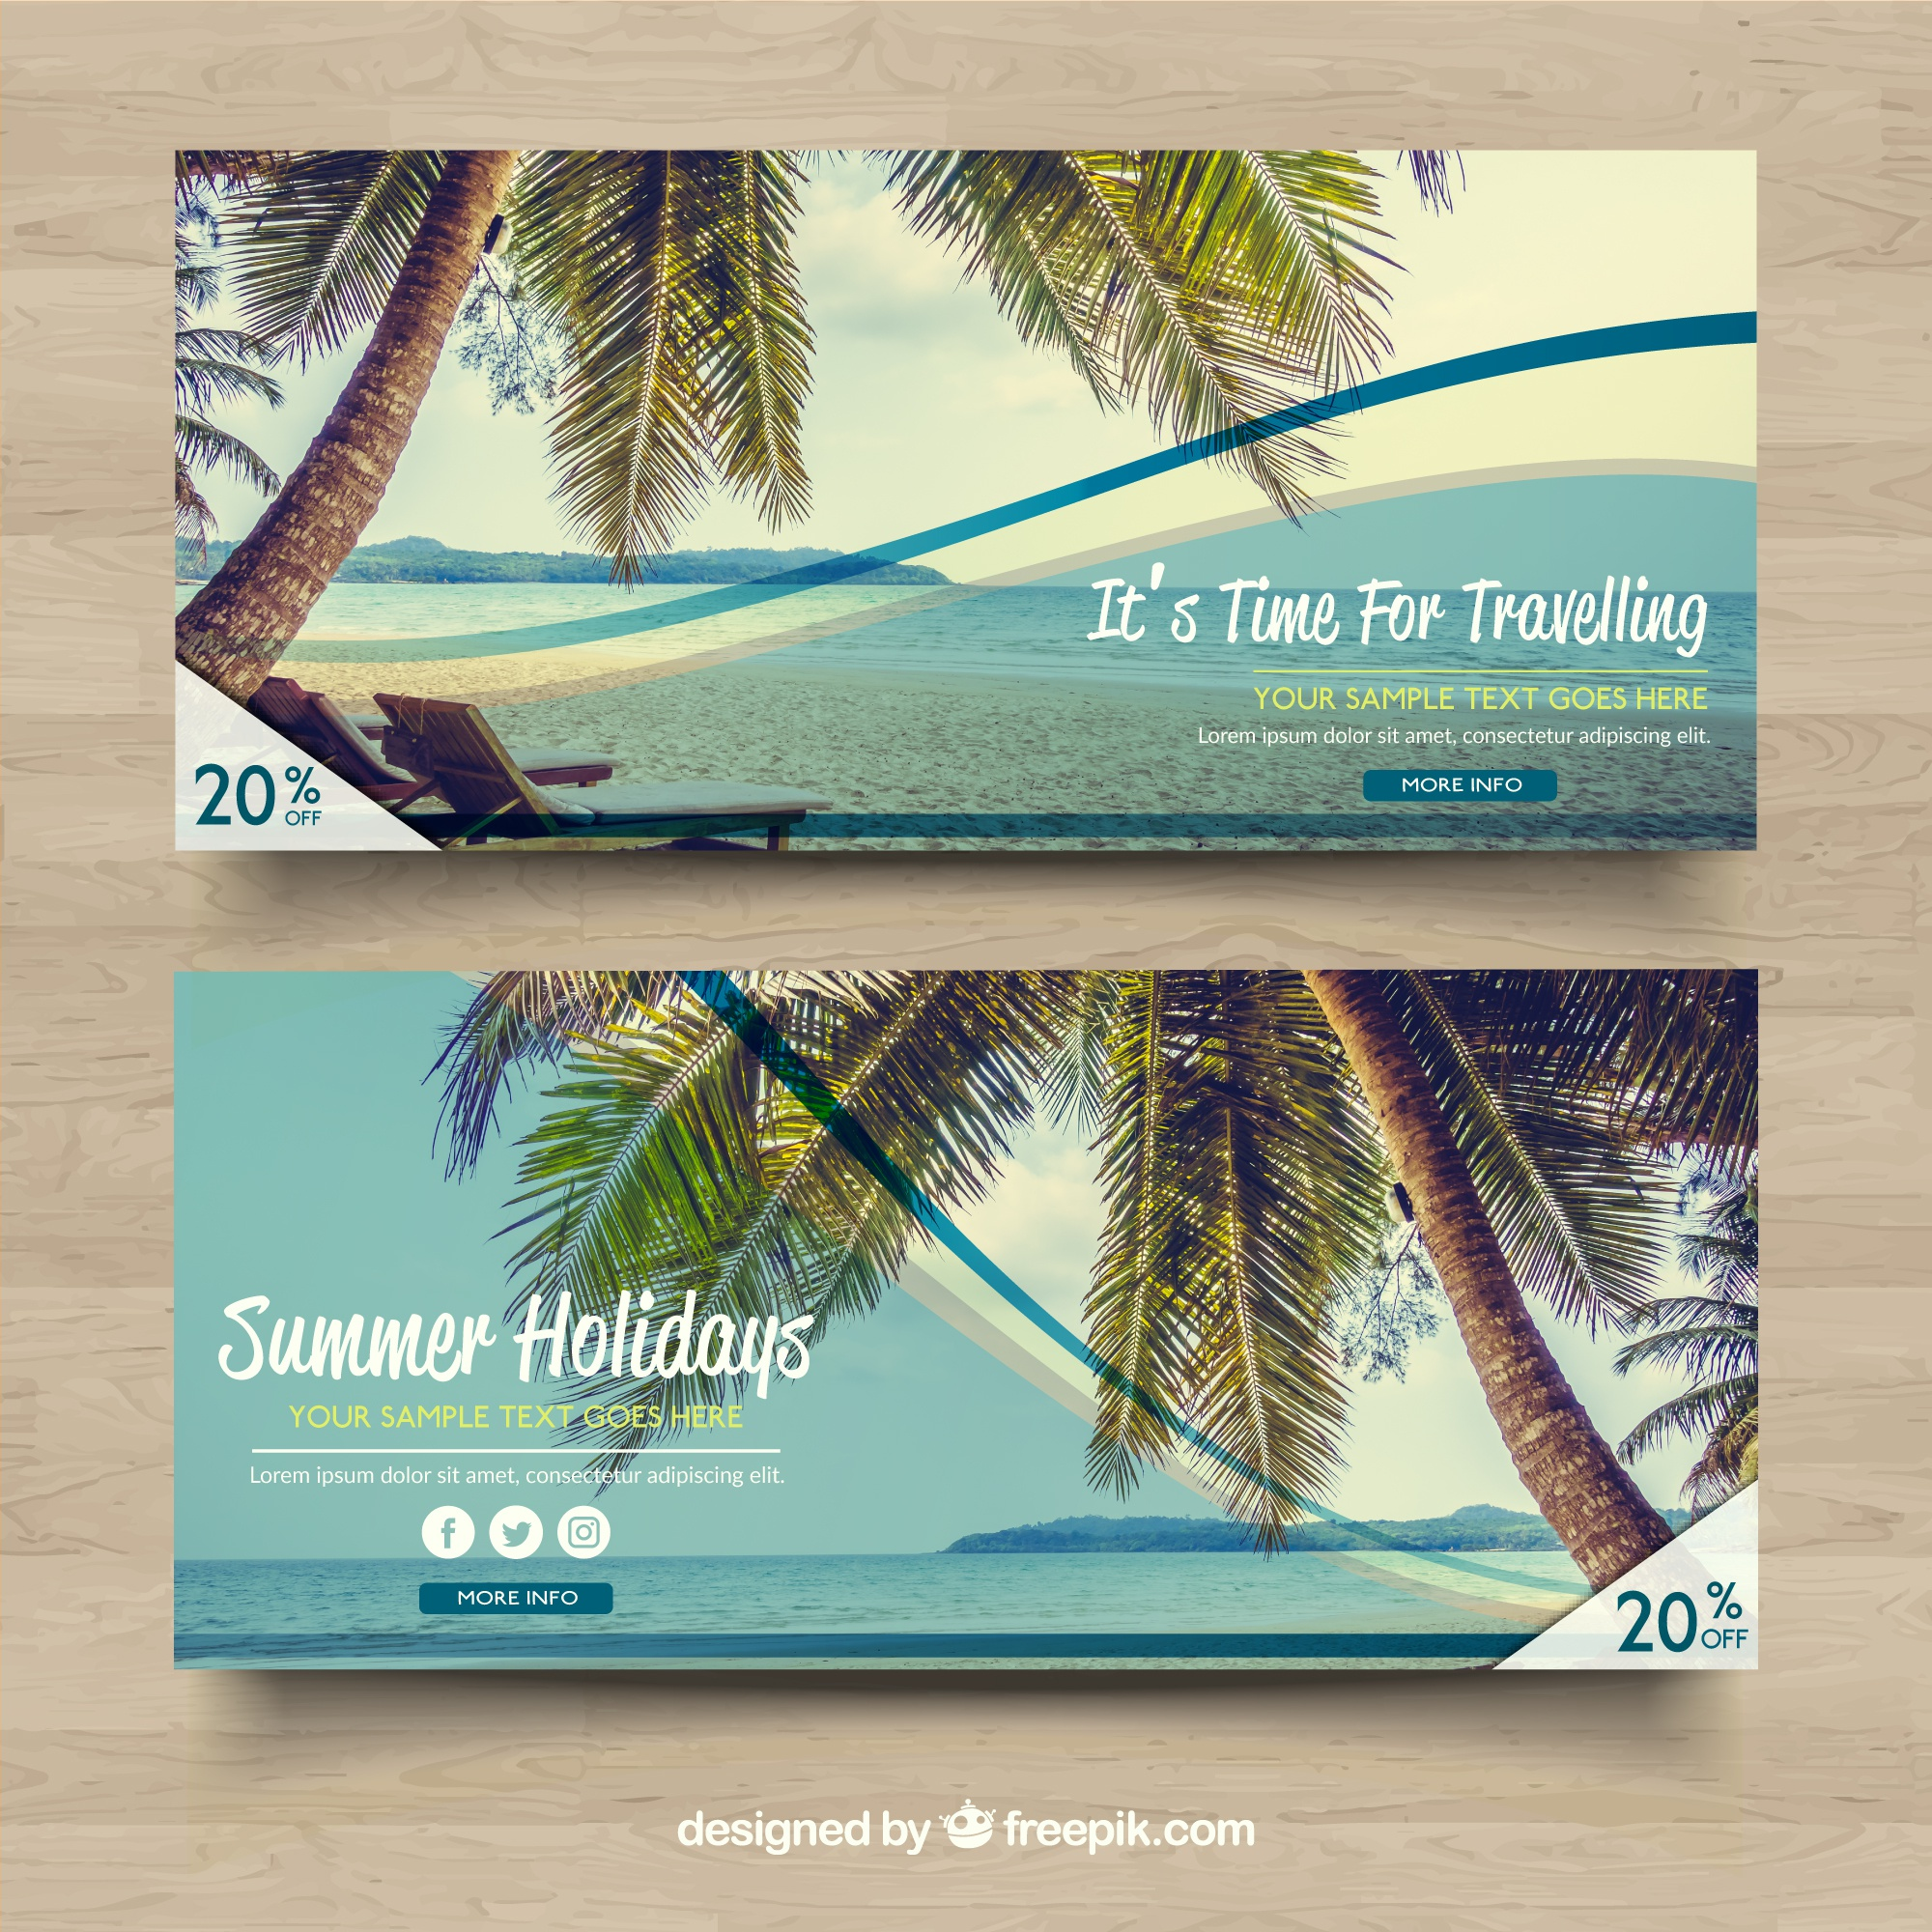 Discount banners with beach landscape